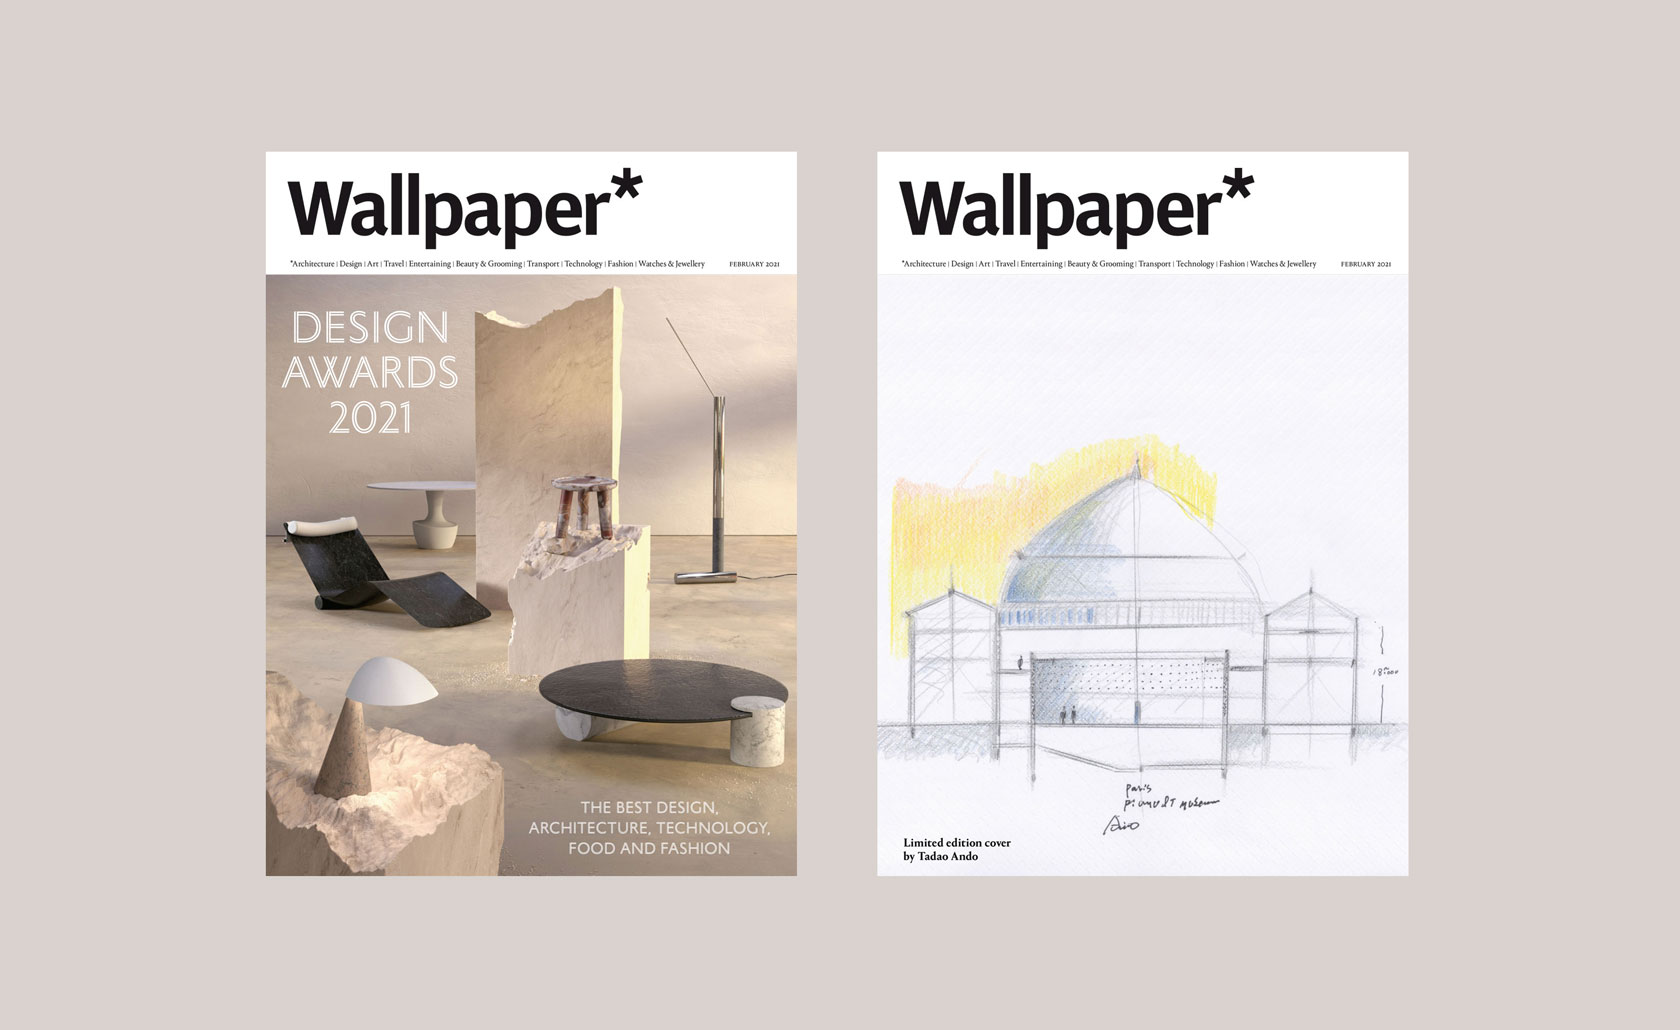 Introducing the Wallpaper Design Awards 2021 Febuary Issue